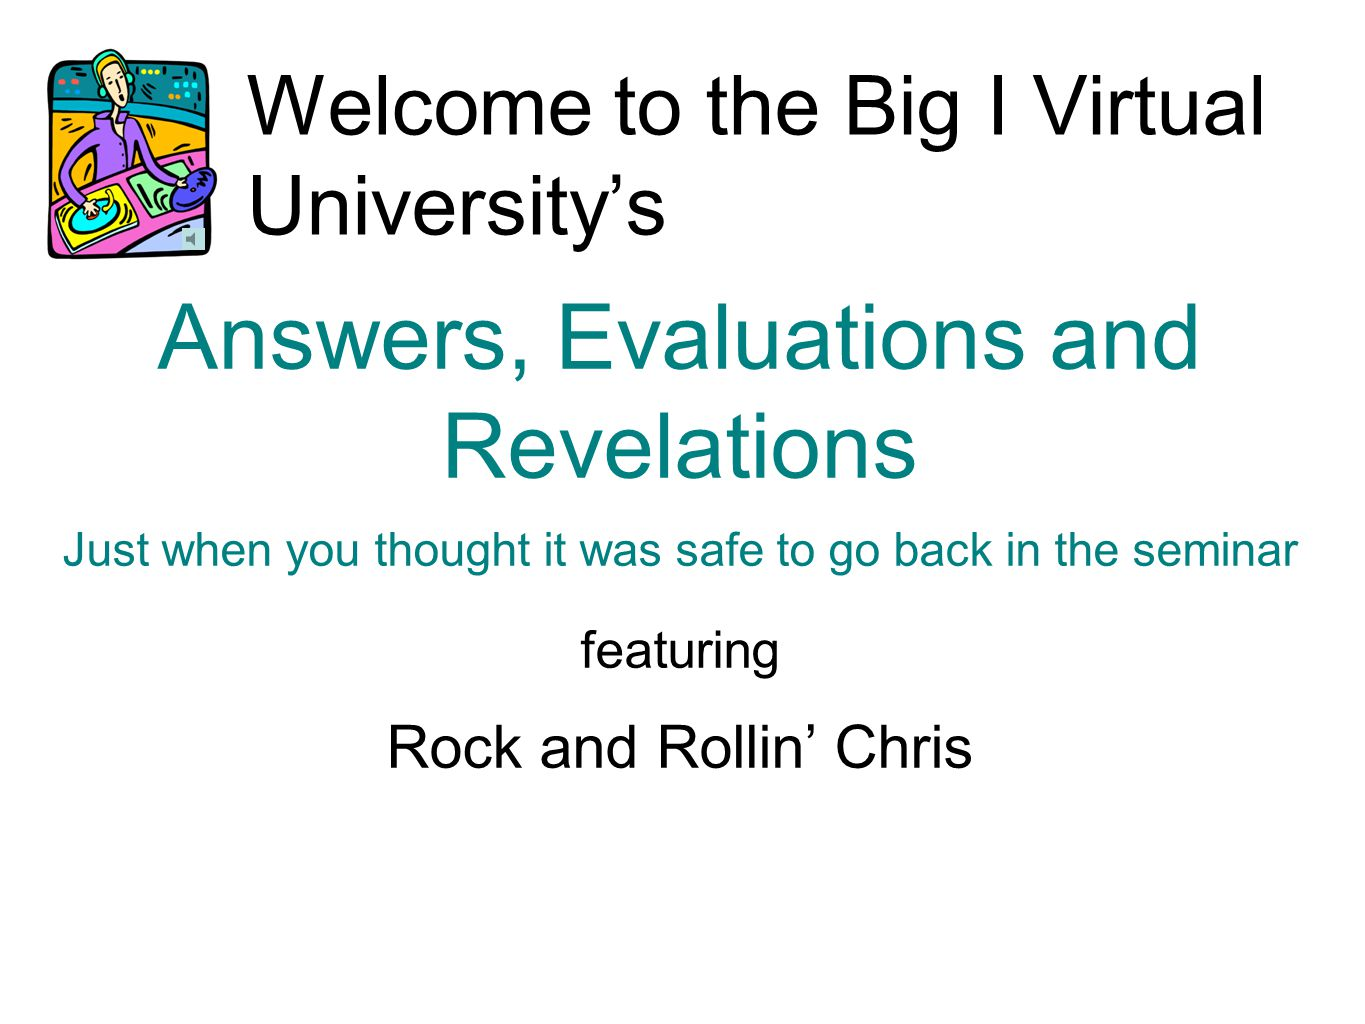 Welcome to the Big I Virtual University's Answers, Evaluations and Revelations Just when you thought it was safe to go back in the seminar featuring Rock and Rollin' Chris